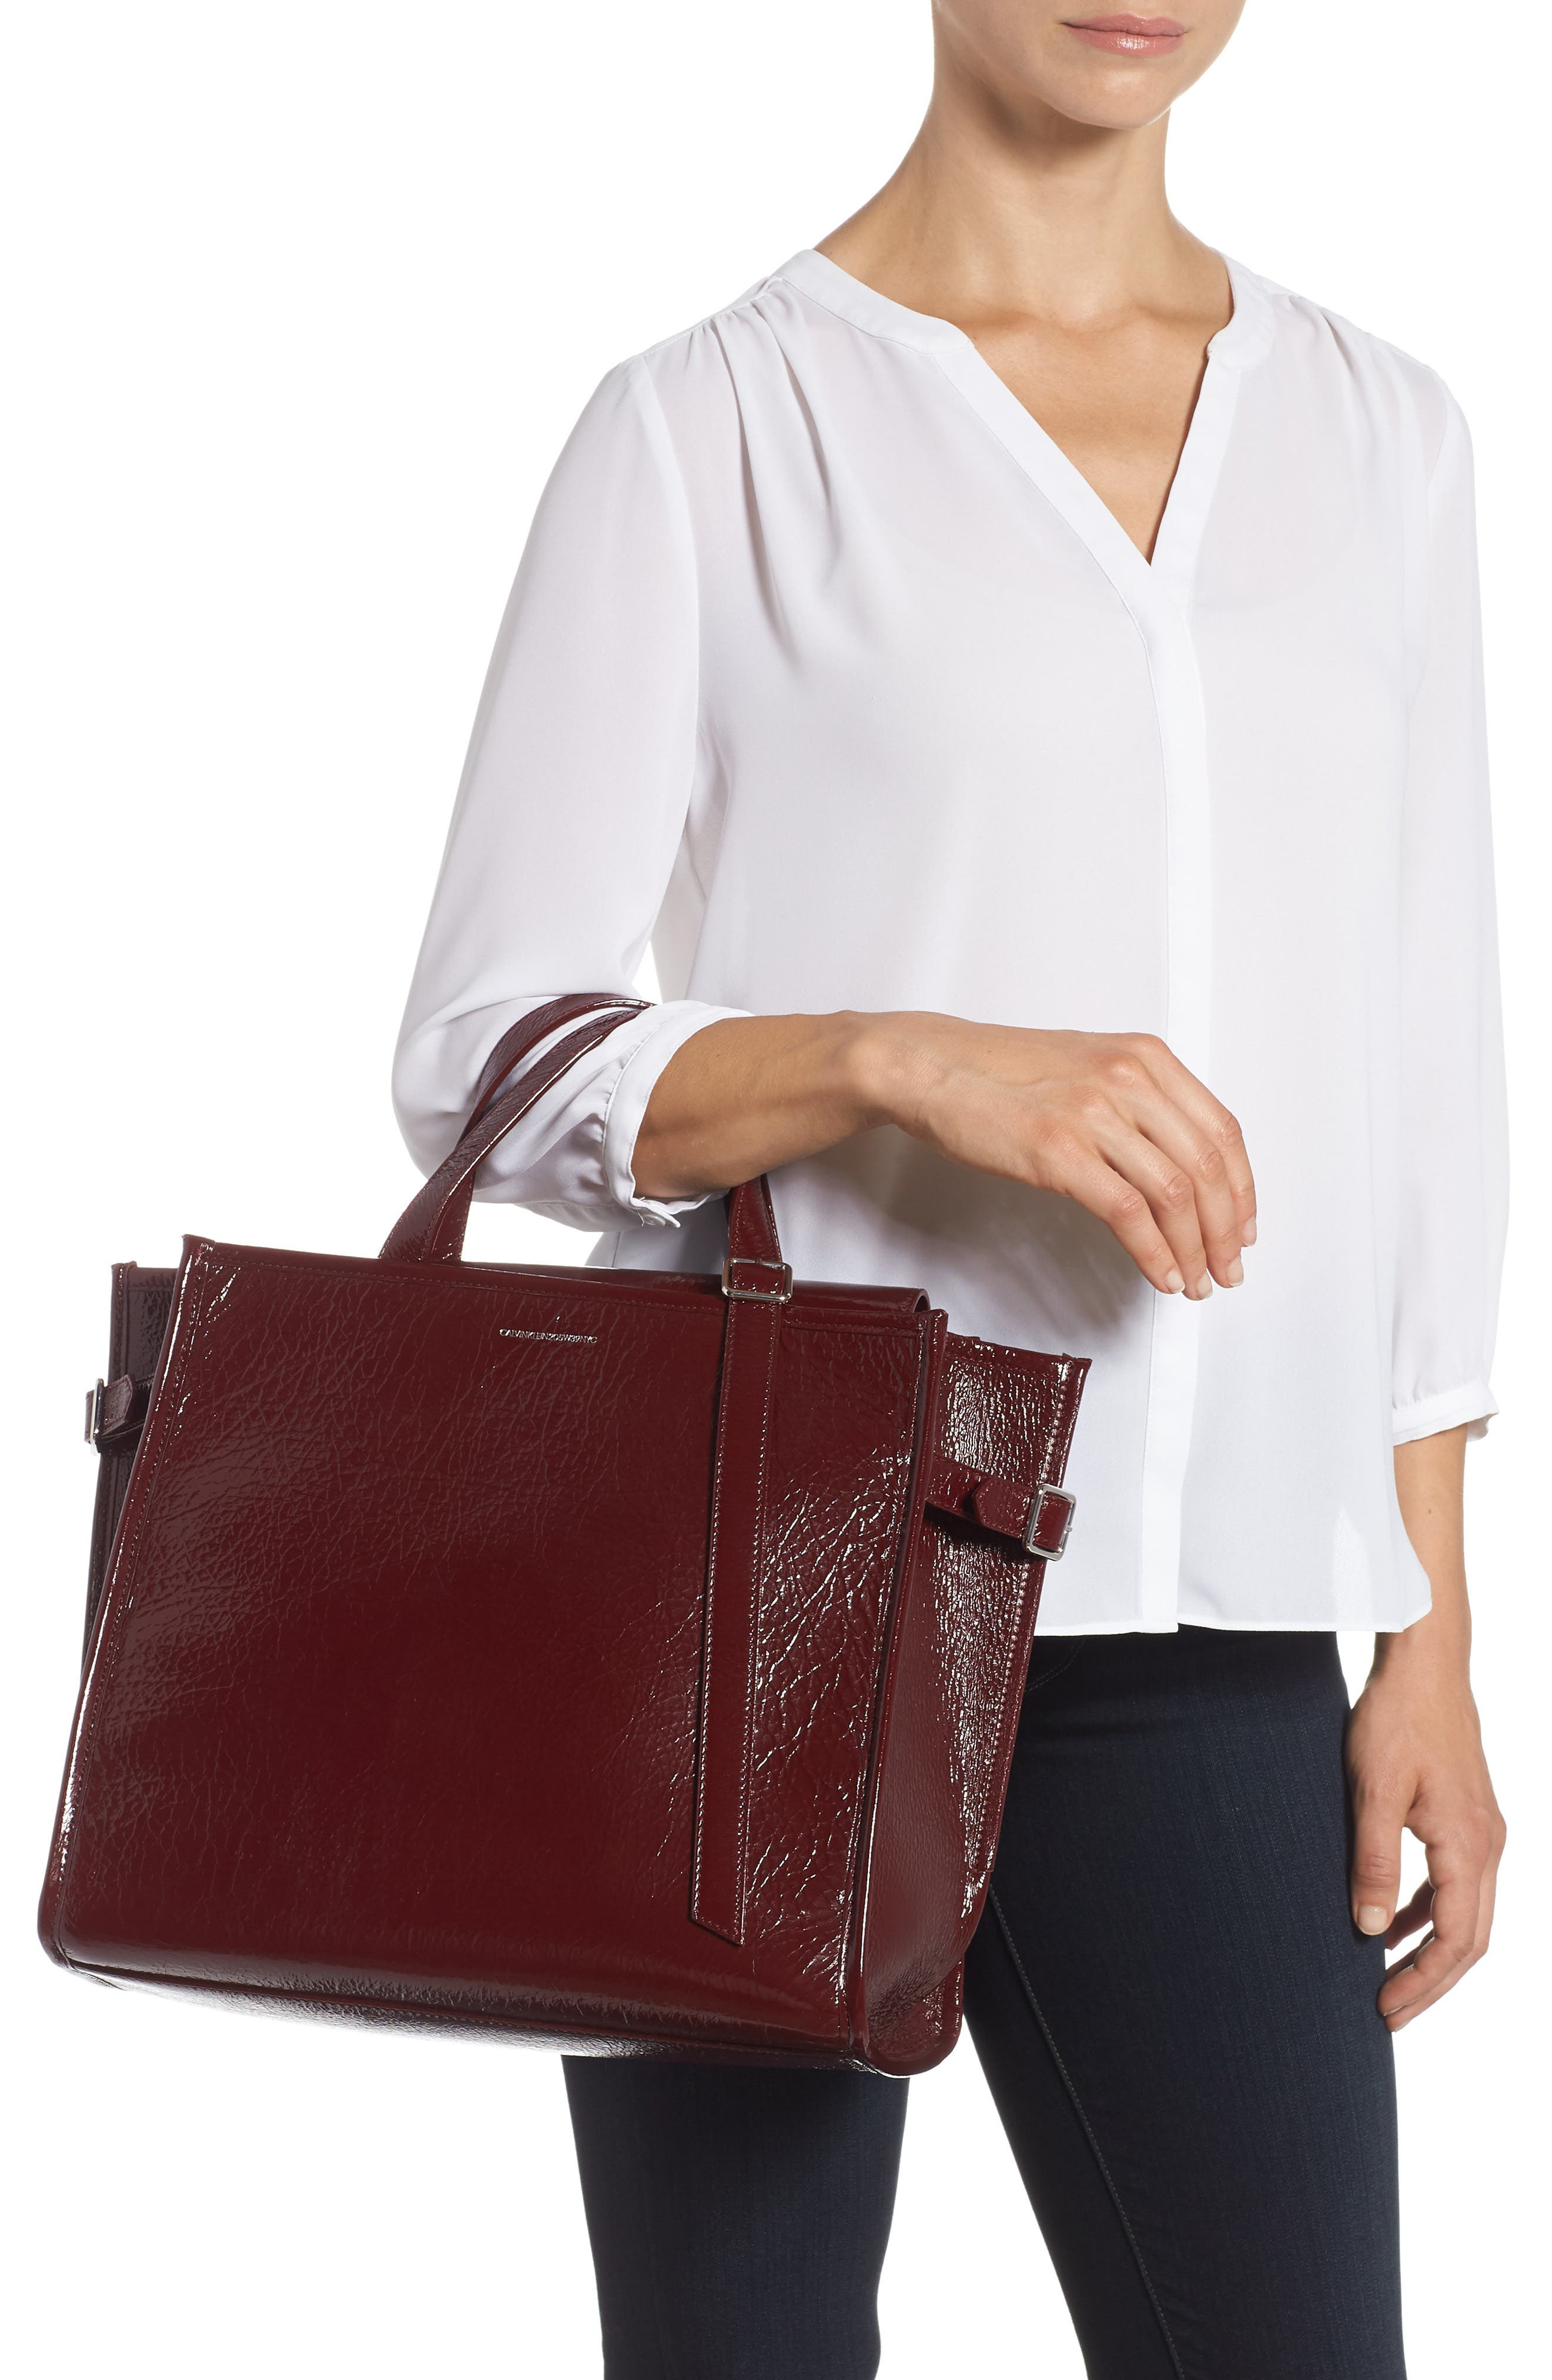 CALVIN KLEIN 209W39NYC East/West Leather Tote,                             Alternate thumbnail 2, color,                             DARK BURGUNDY